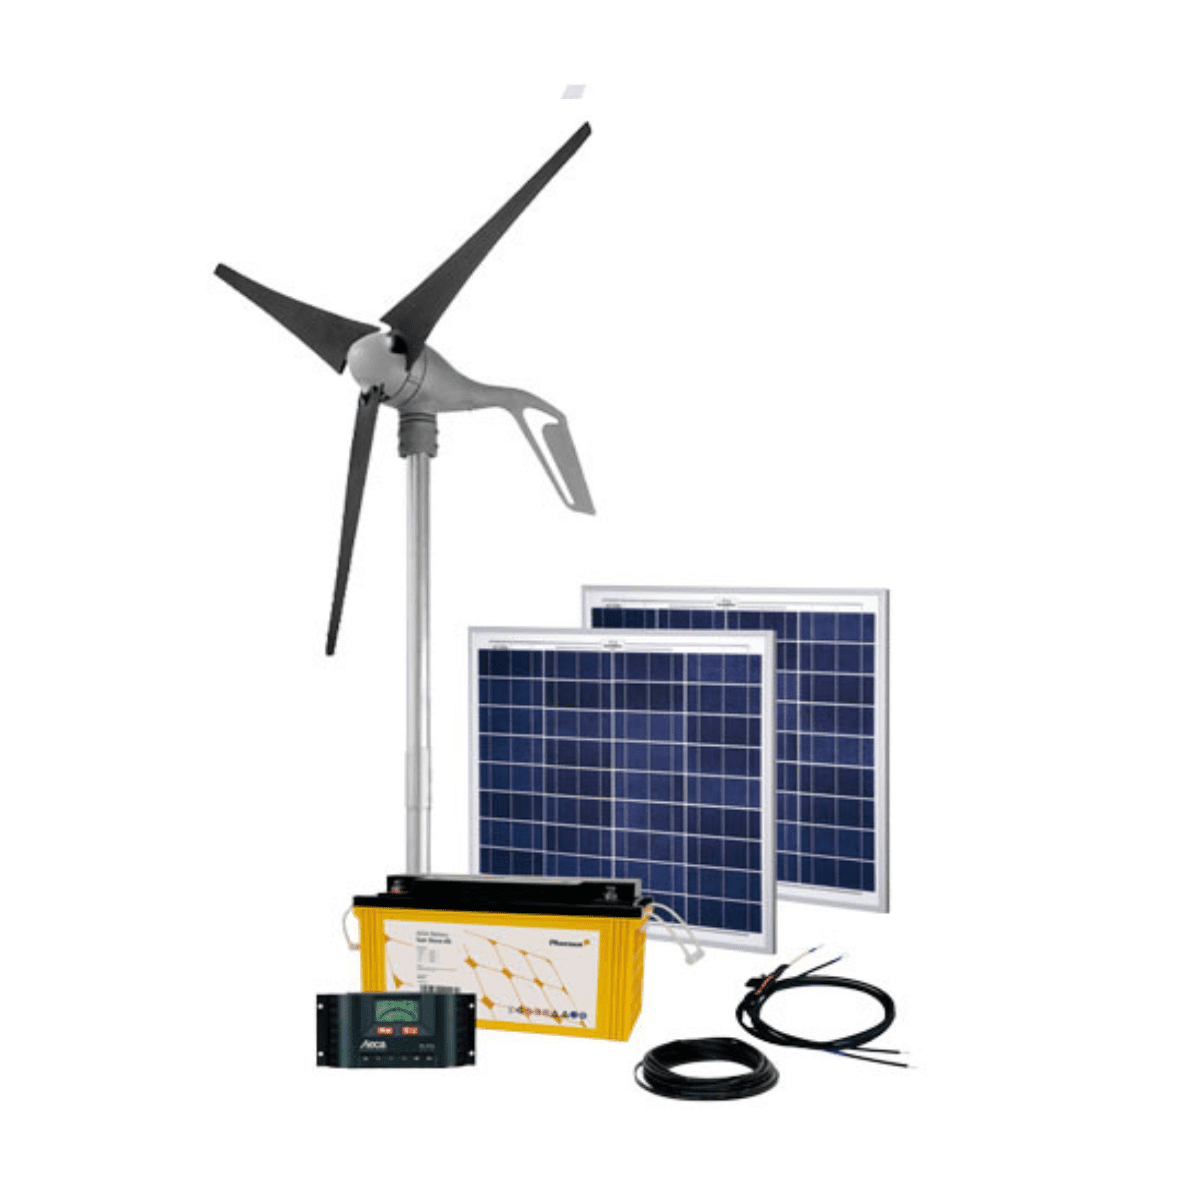 DIY Off-grid Energy Generation Solar Panel Kit 260W 12V on Sale